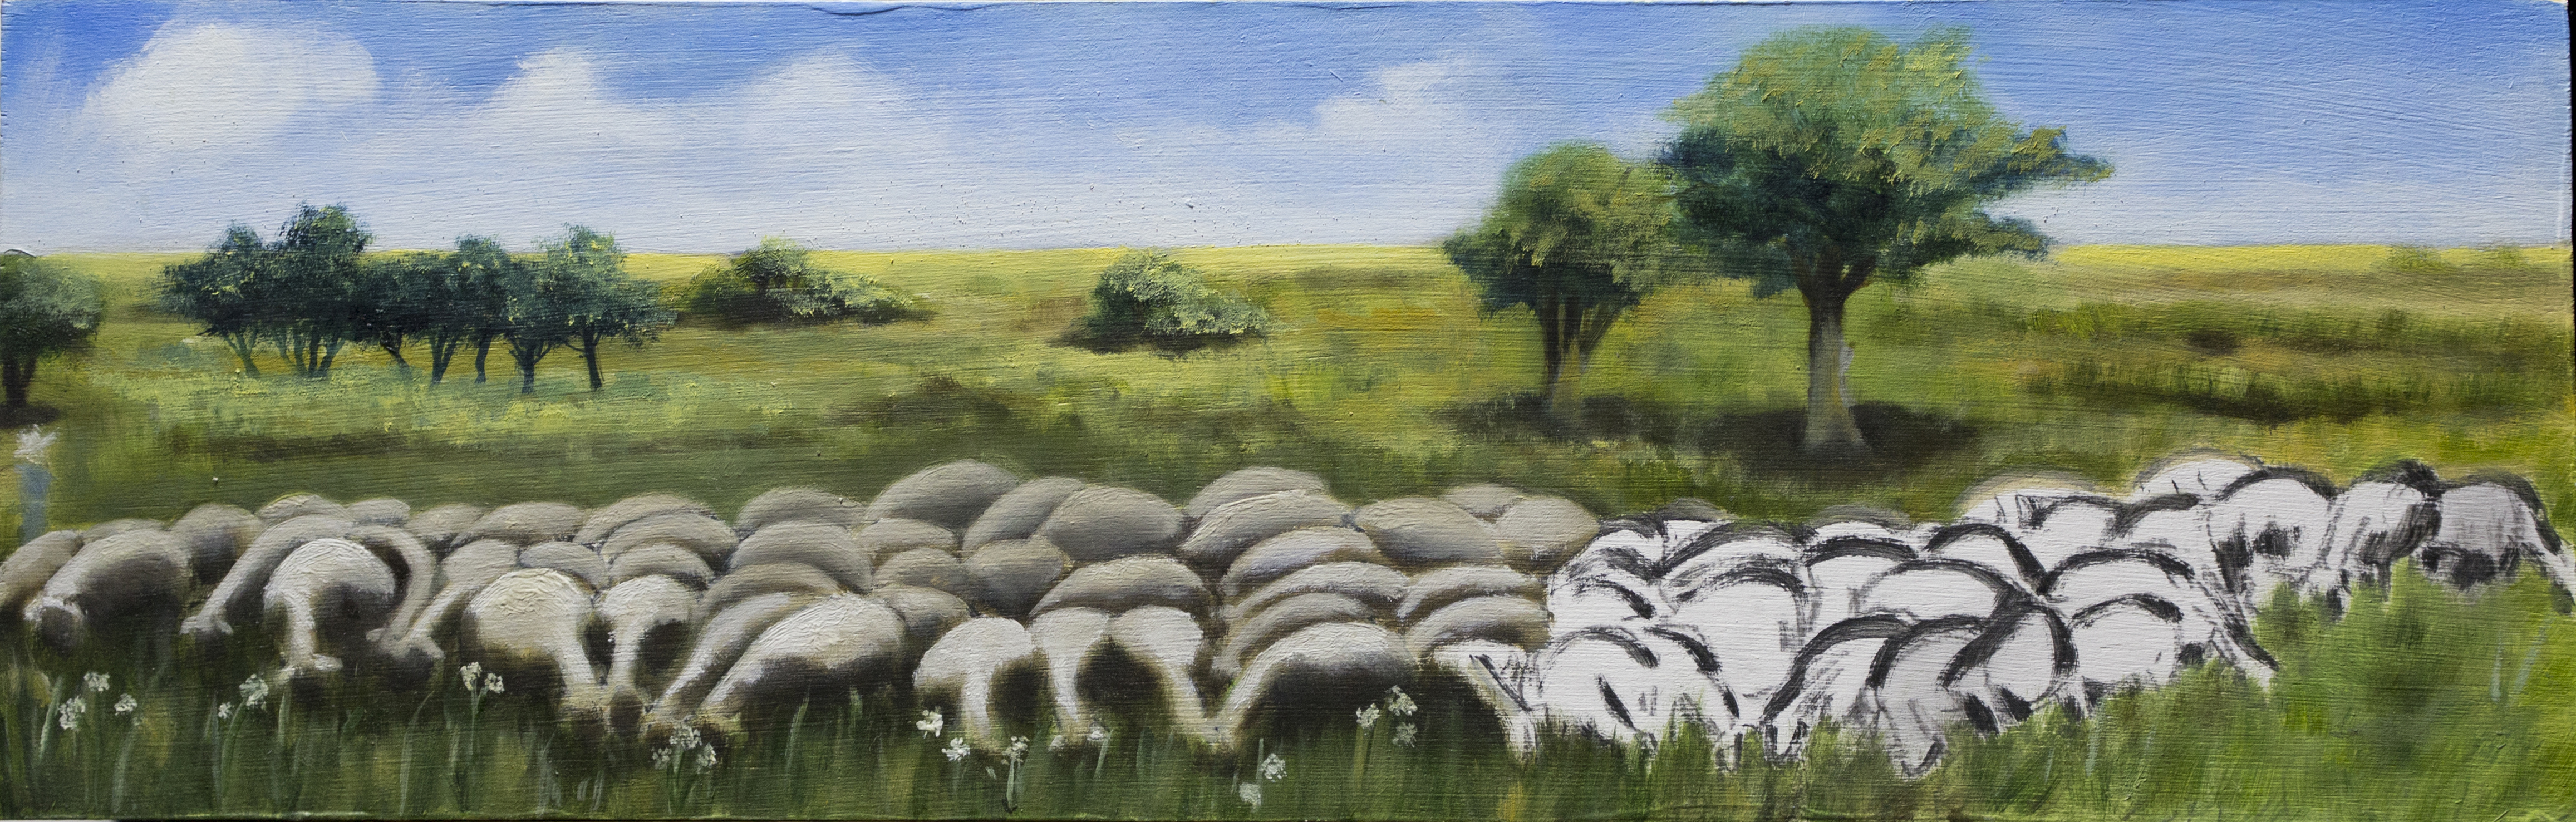 The Sheep. 2010.